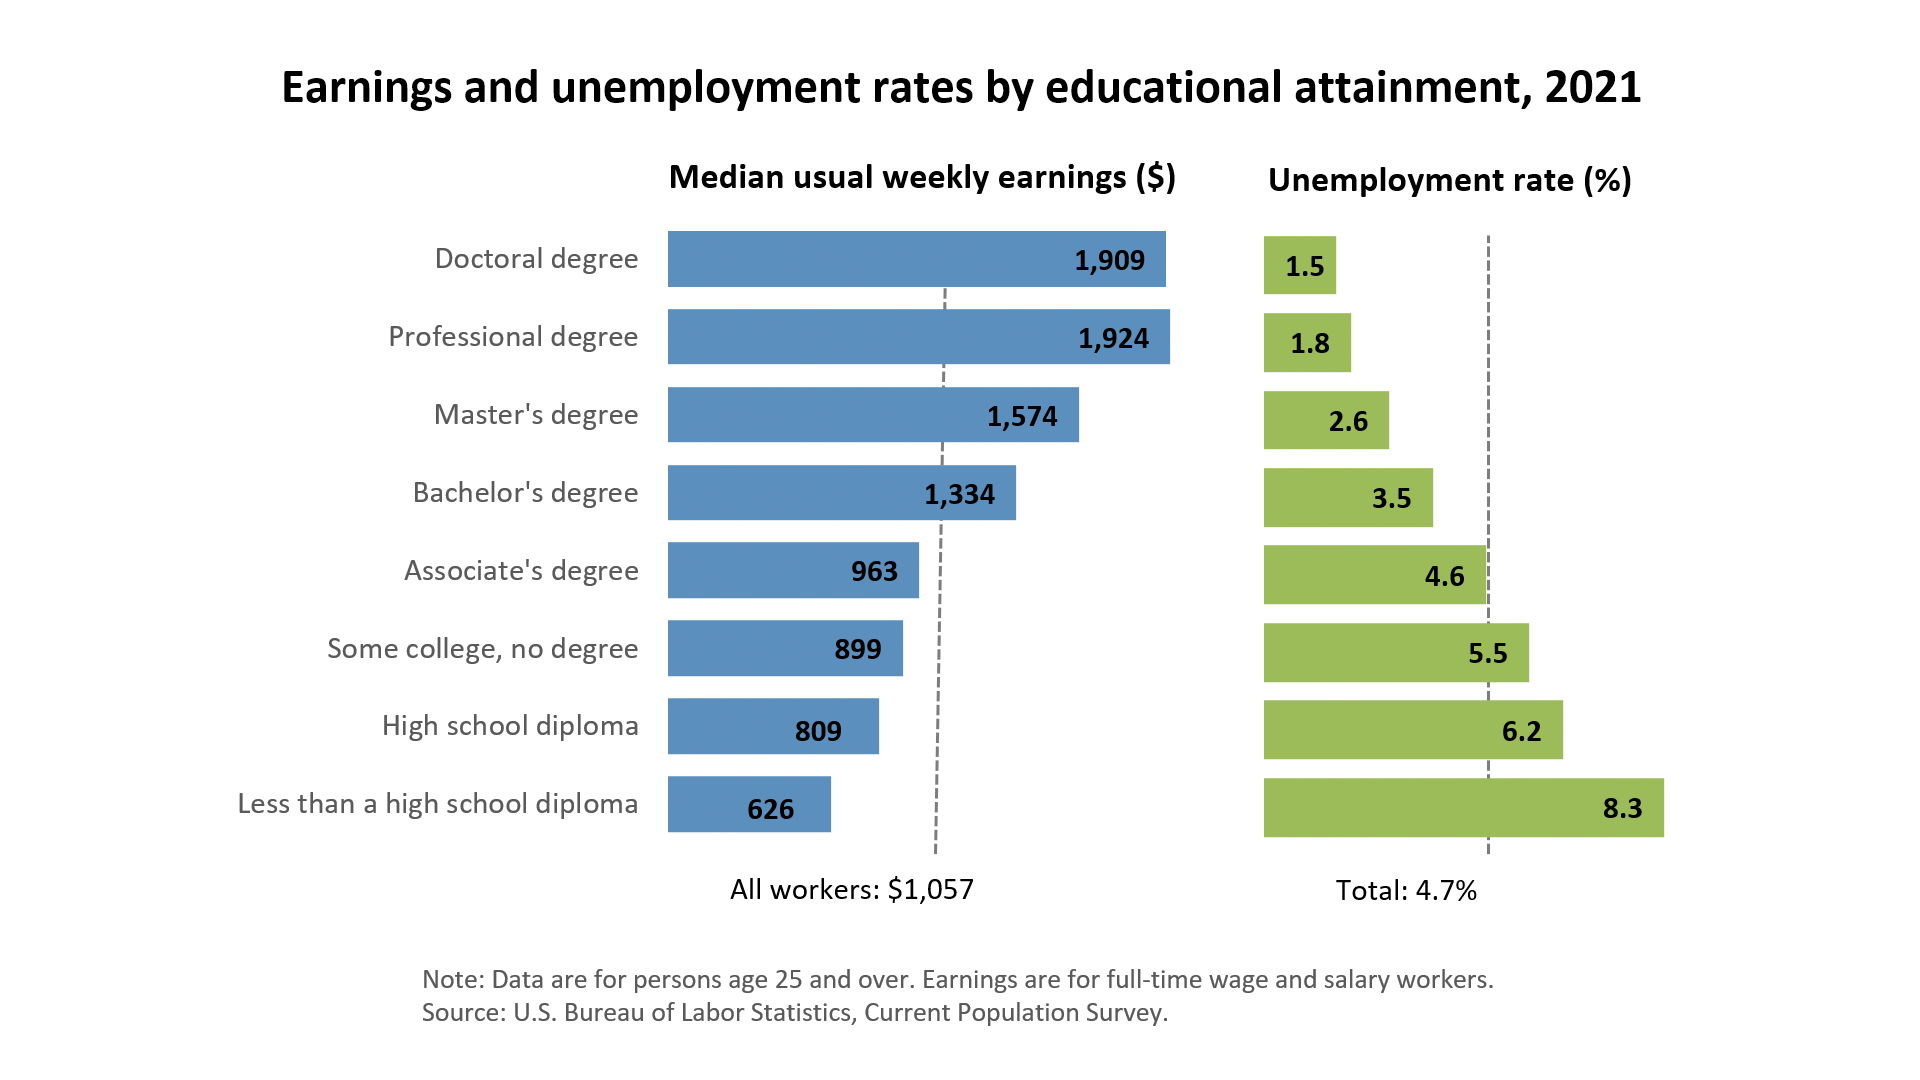 Chart. Earnings and unemployment rates by educational attainment